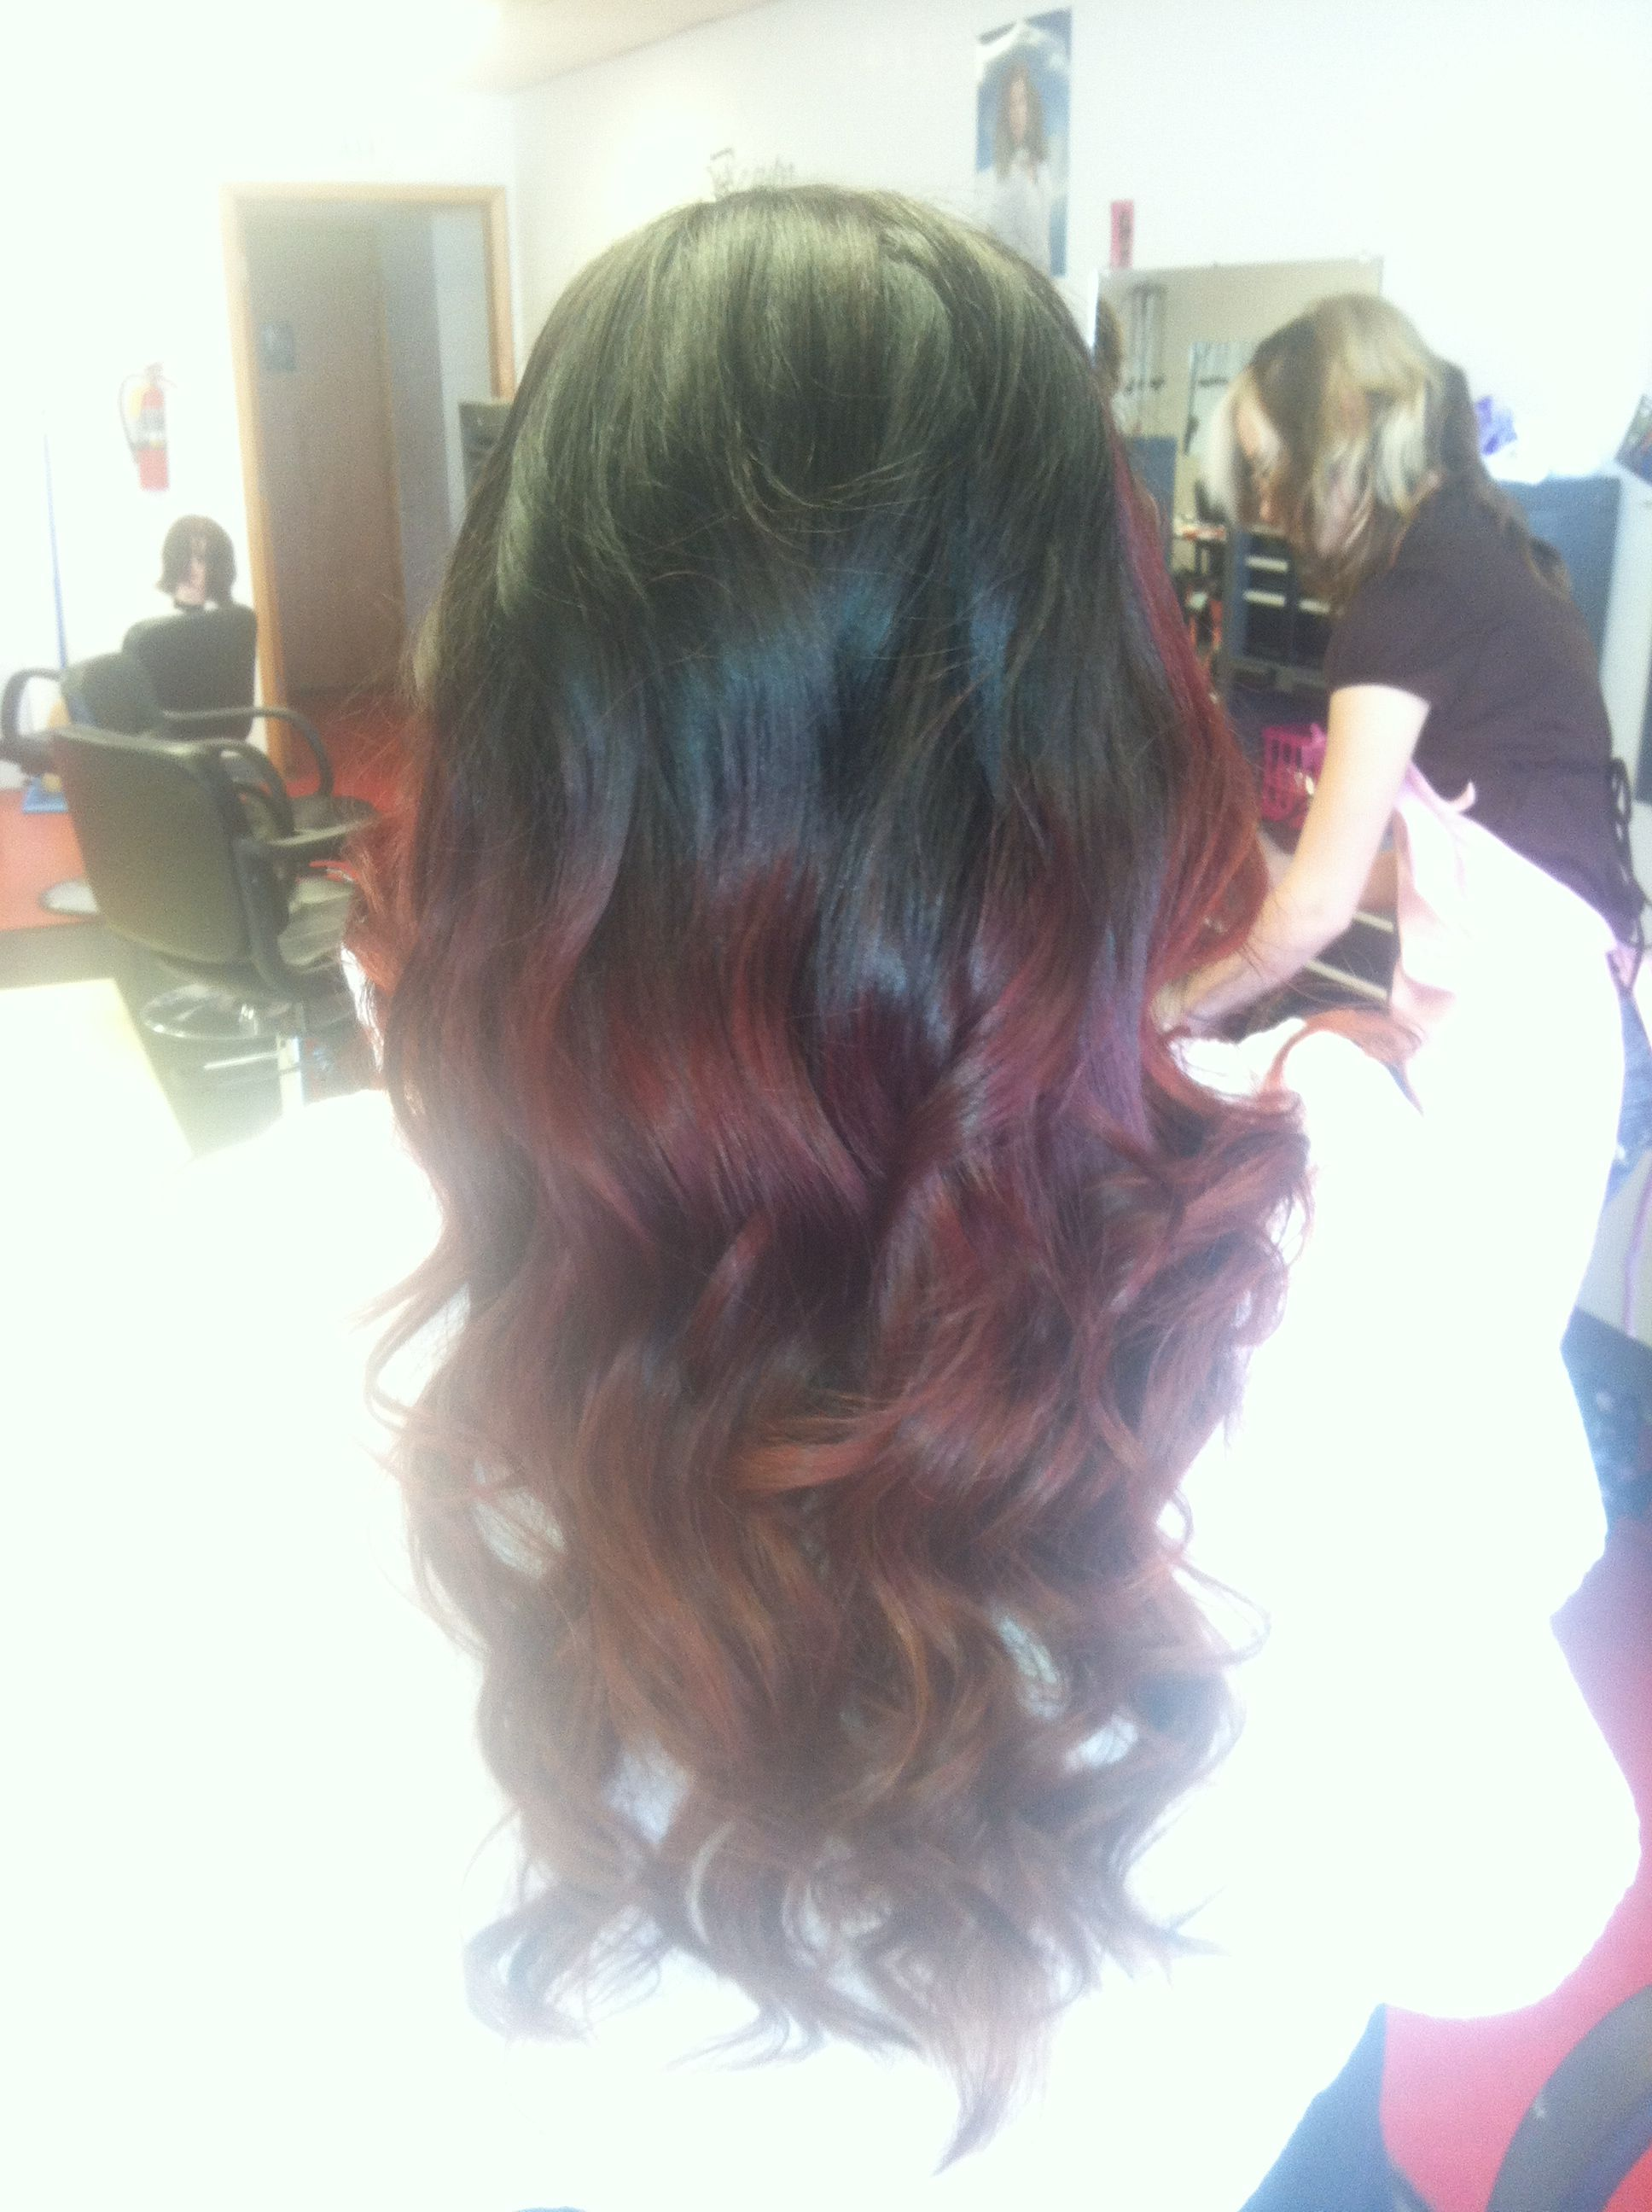 My ombré Job on Brittany! Nailed it!